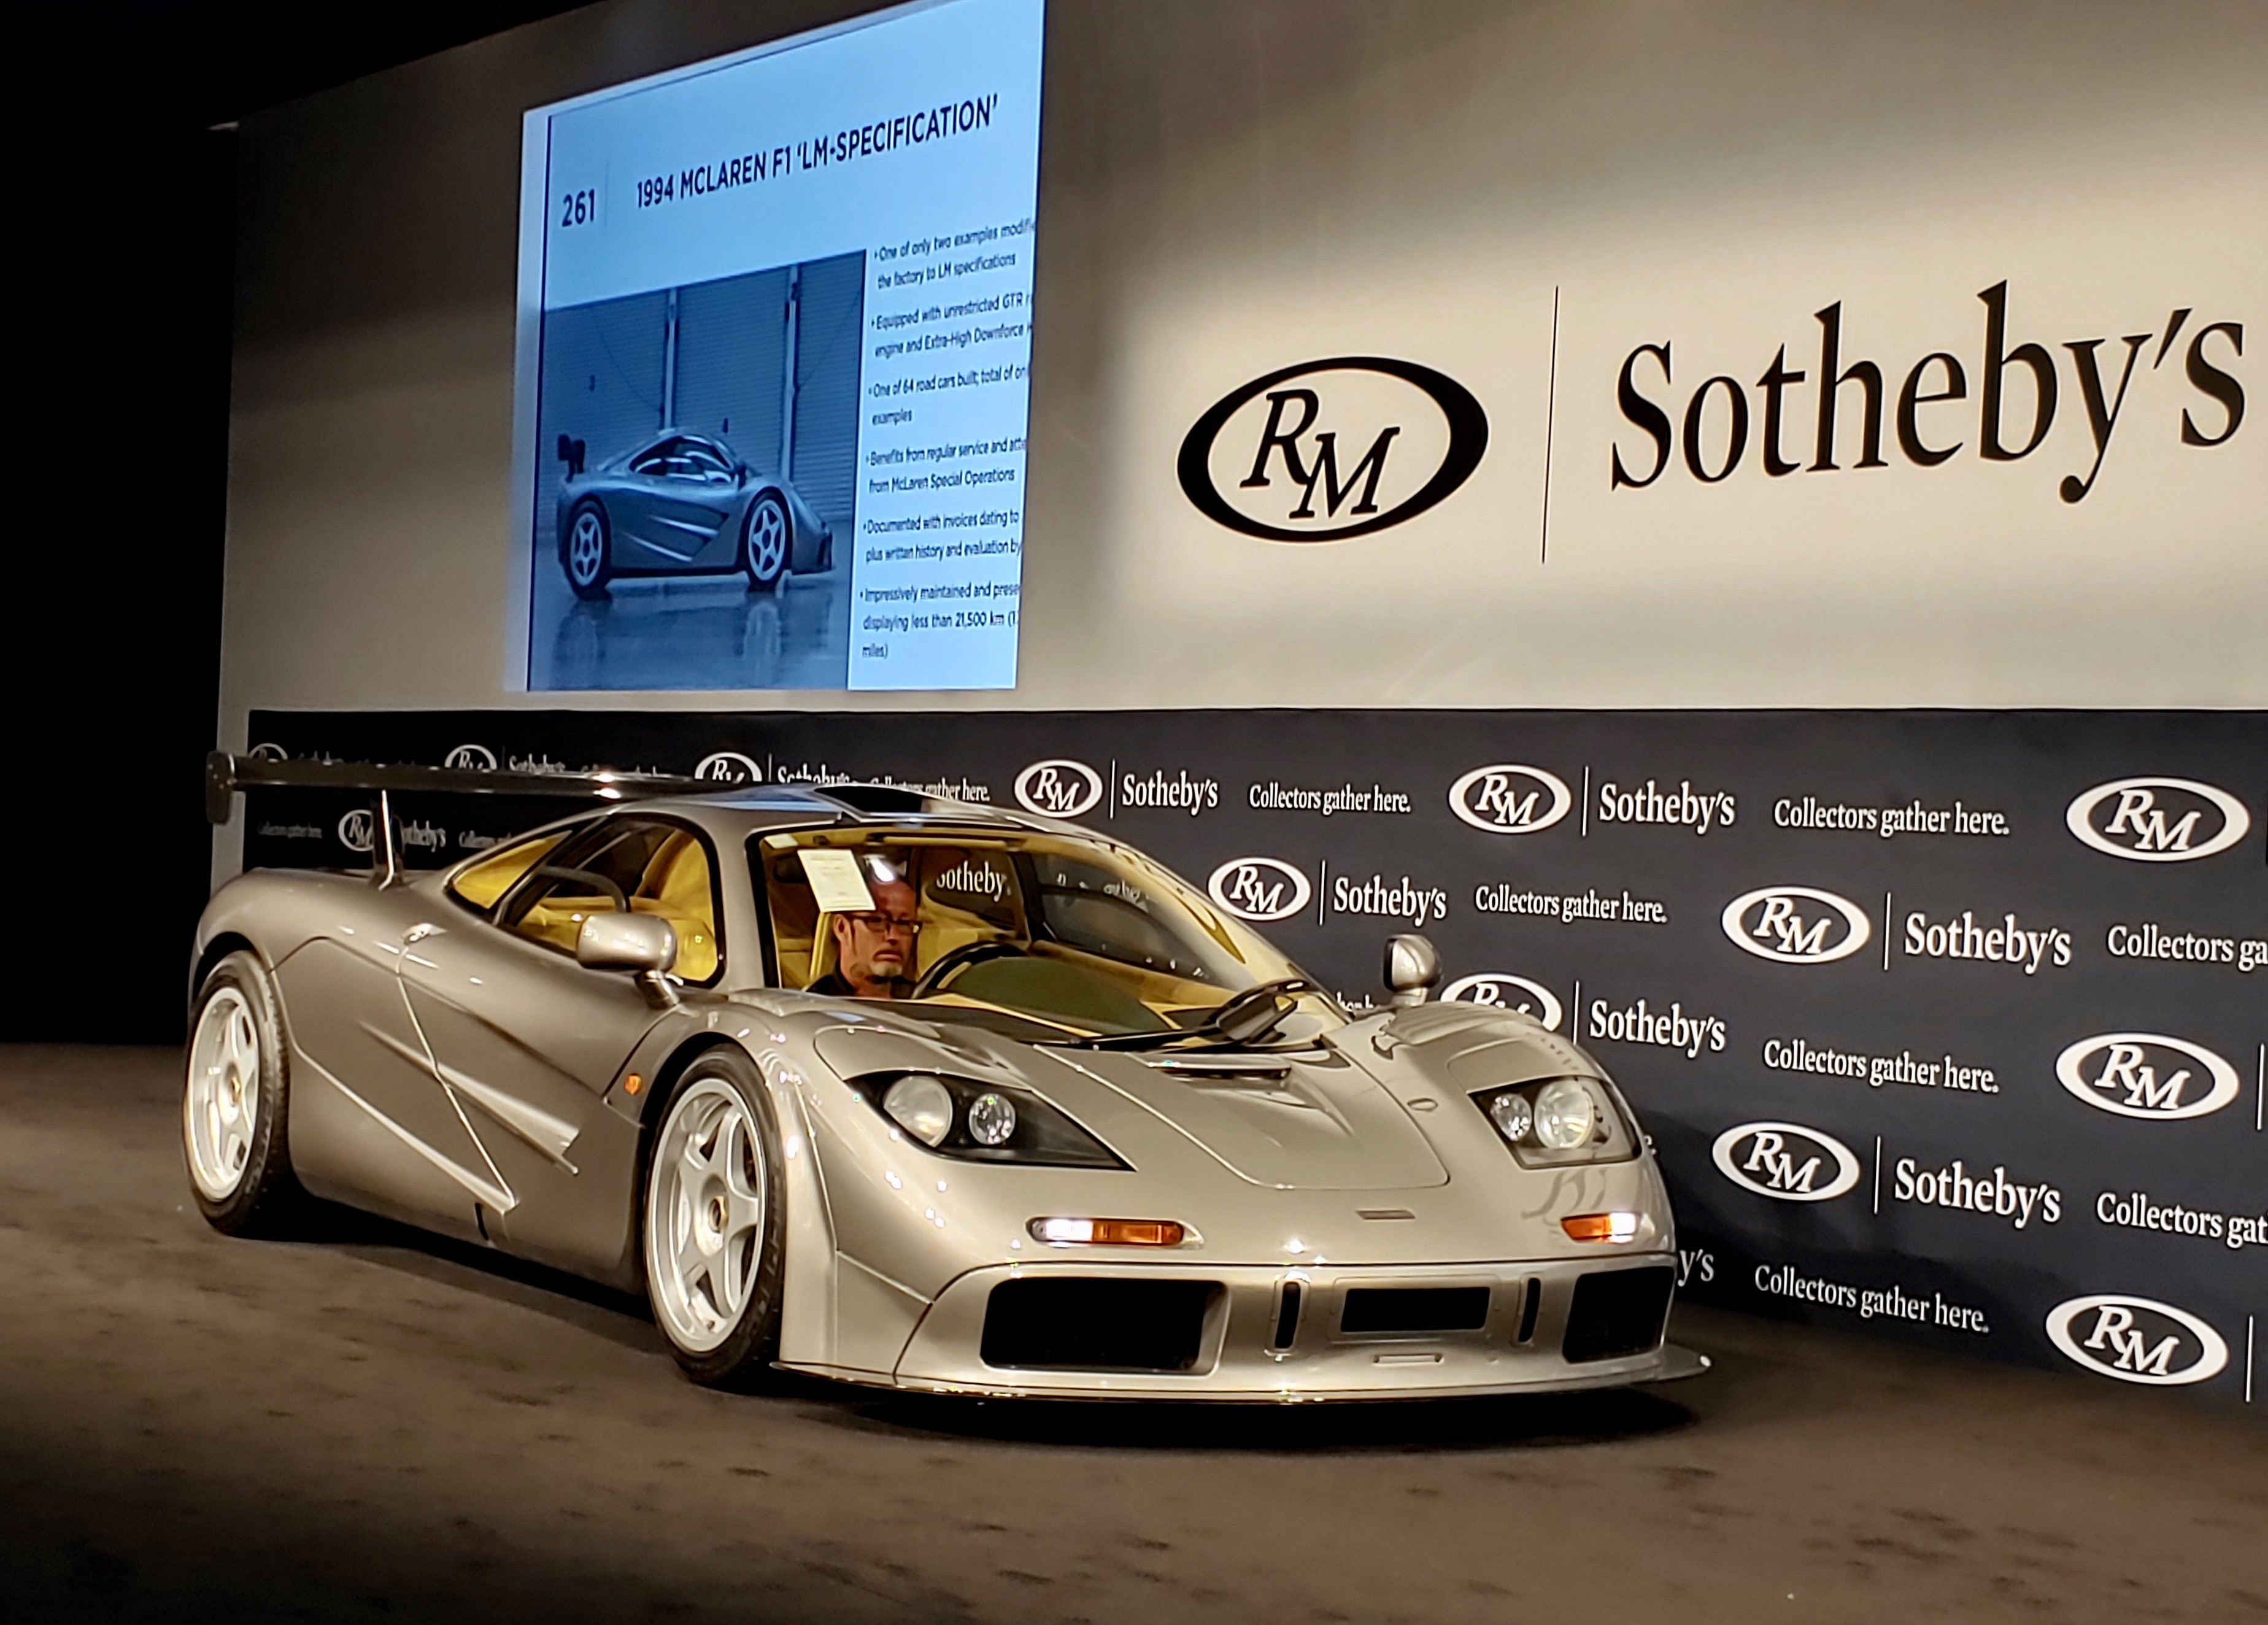 Monterey, Bidders, sellers disagree on values at Monterey auctions, ClassicCars.com Journal